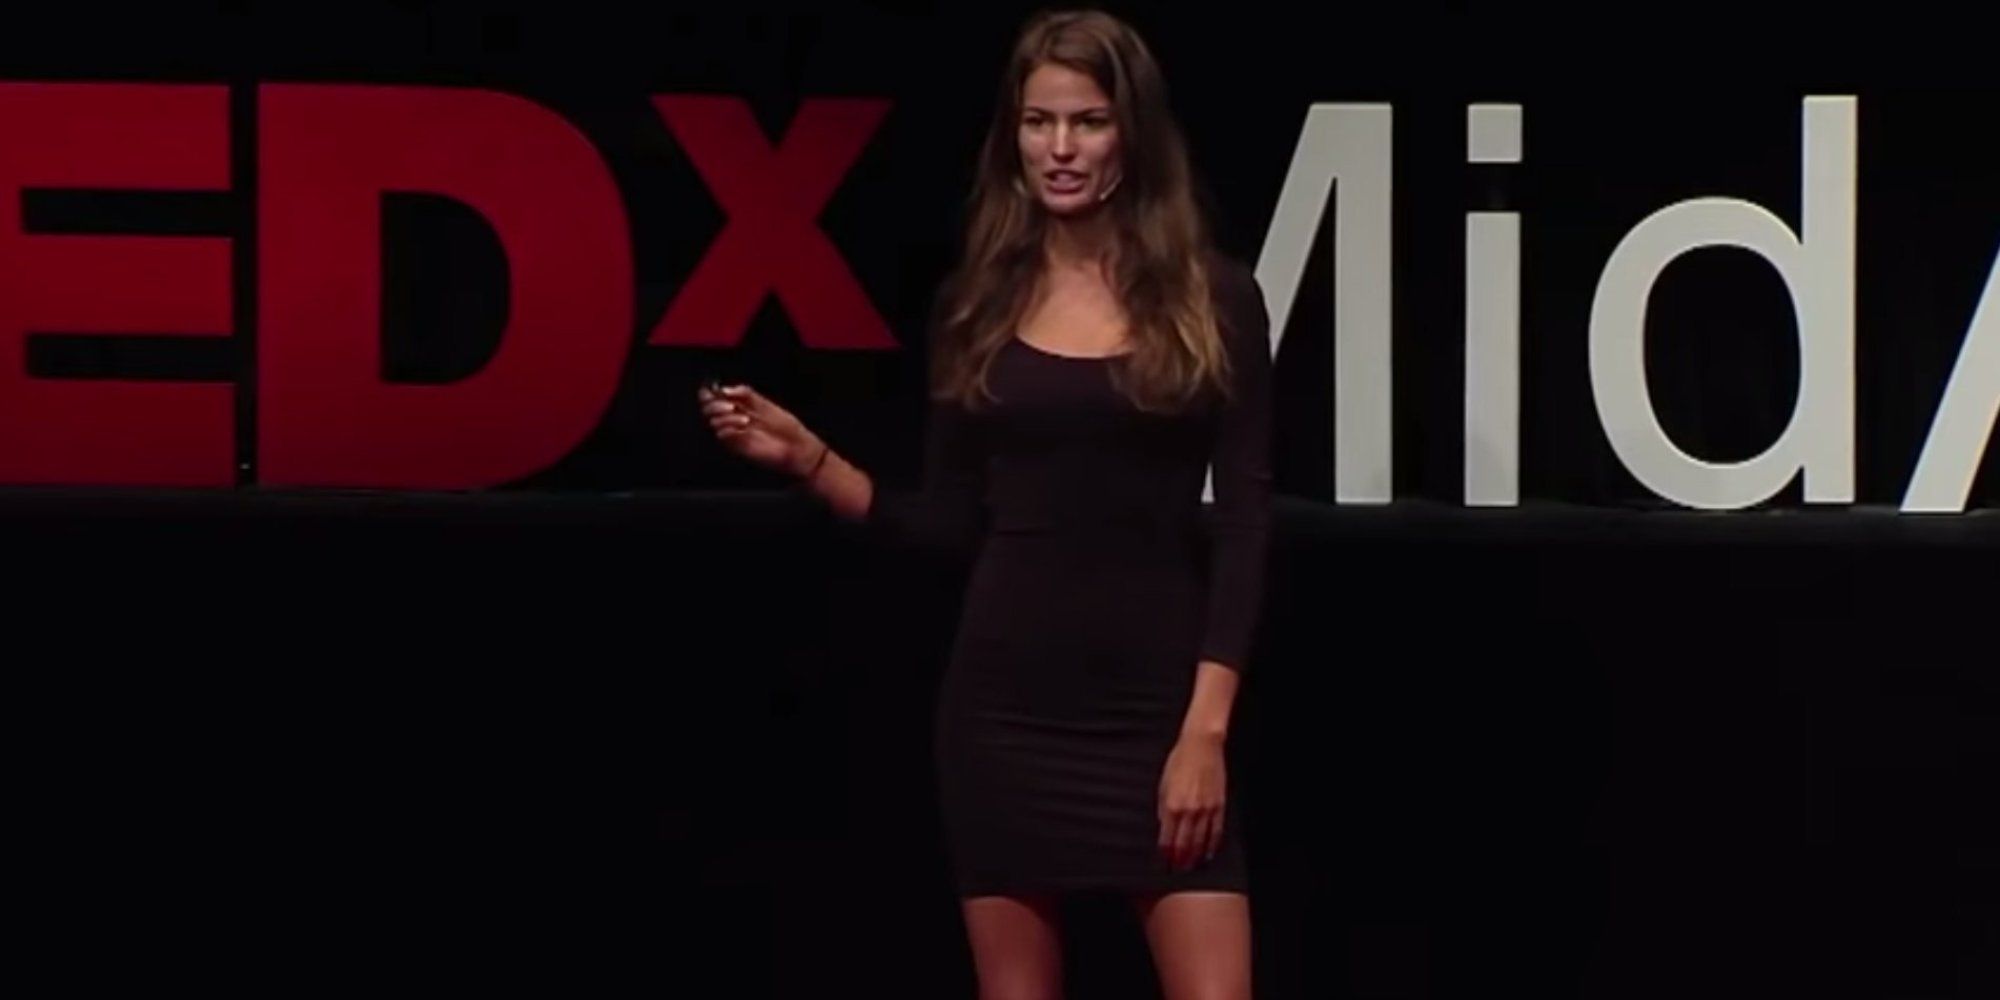 cameron russell 39 s ted talk exposes the truth behind 39 sexy 39 fashion photo shoots huffpost uk. Black Bedroom Furniture Sets. Home Design Ideas